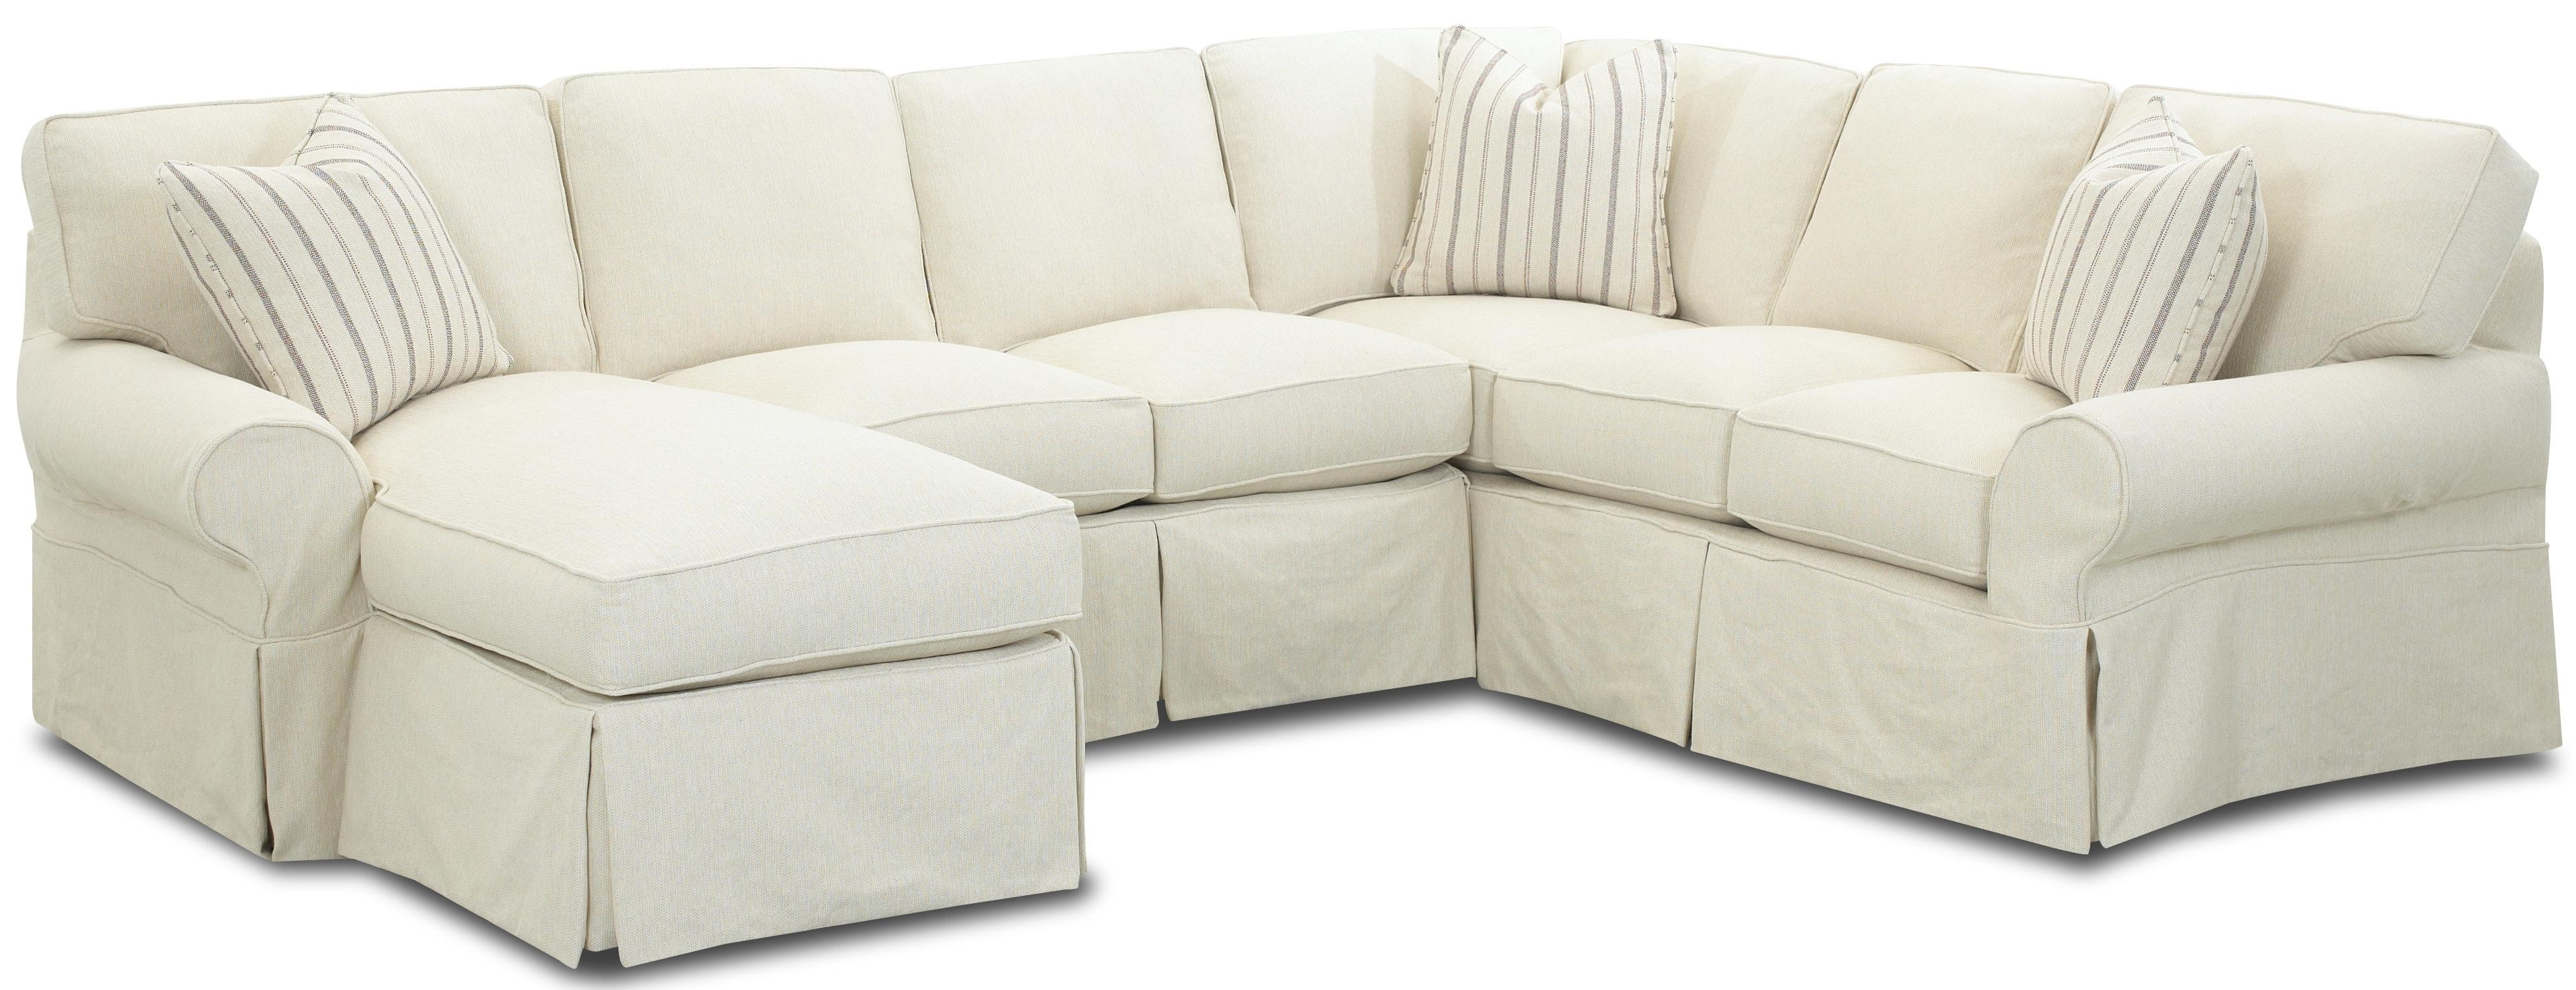 2018 Slipcovered Sofas With Chaise Regarding Awesome Slipcover Sectional Sofa With Chaise 91 For Modern Sofa (View 1 of 15)